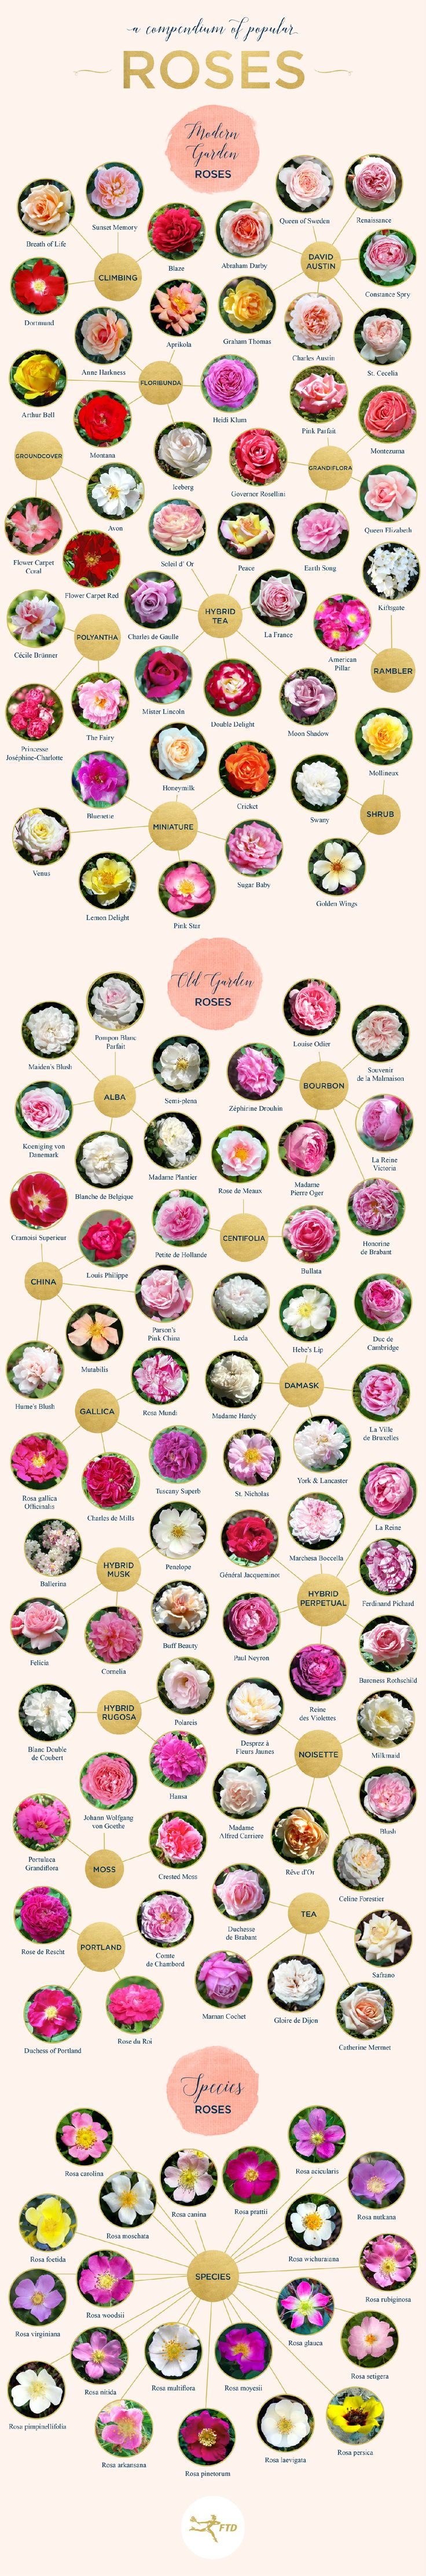 Types of Roses: A Visual Compendium - Fresh by FTD